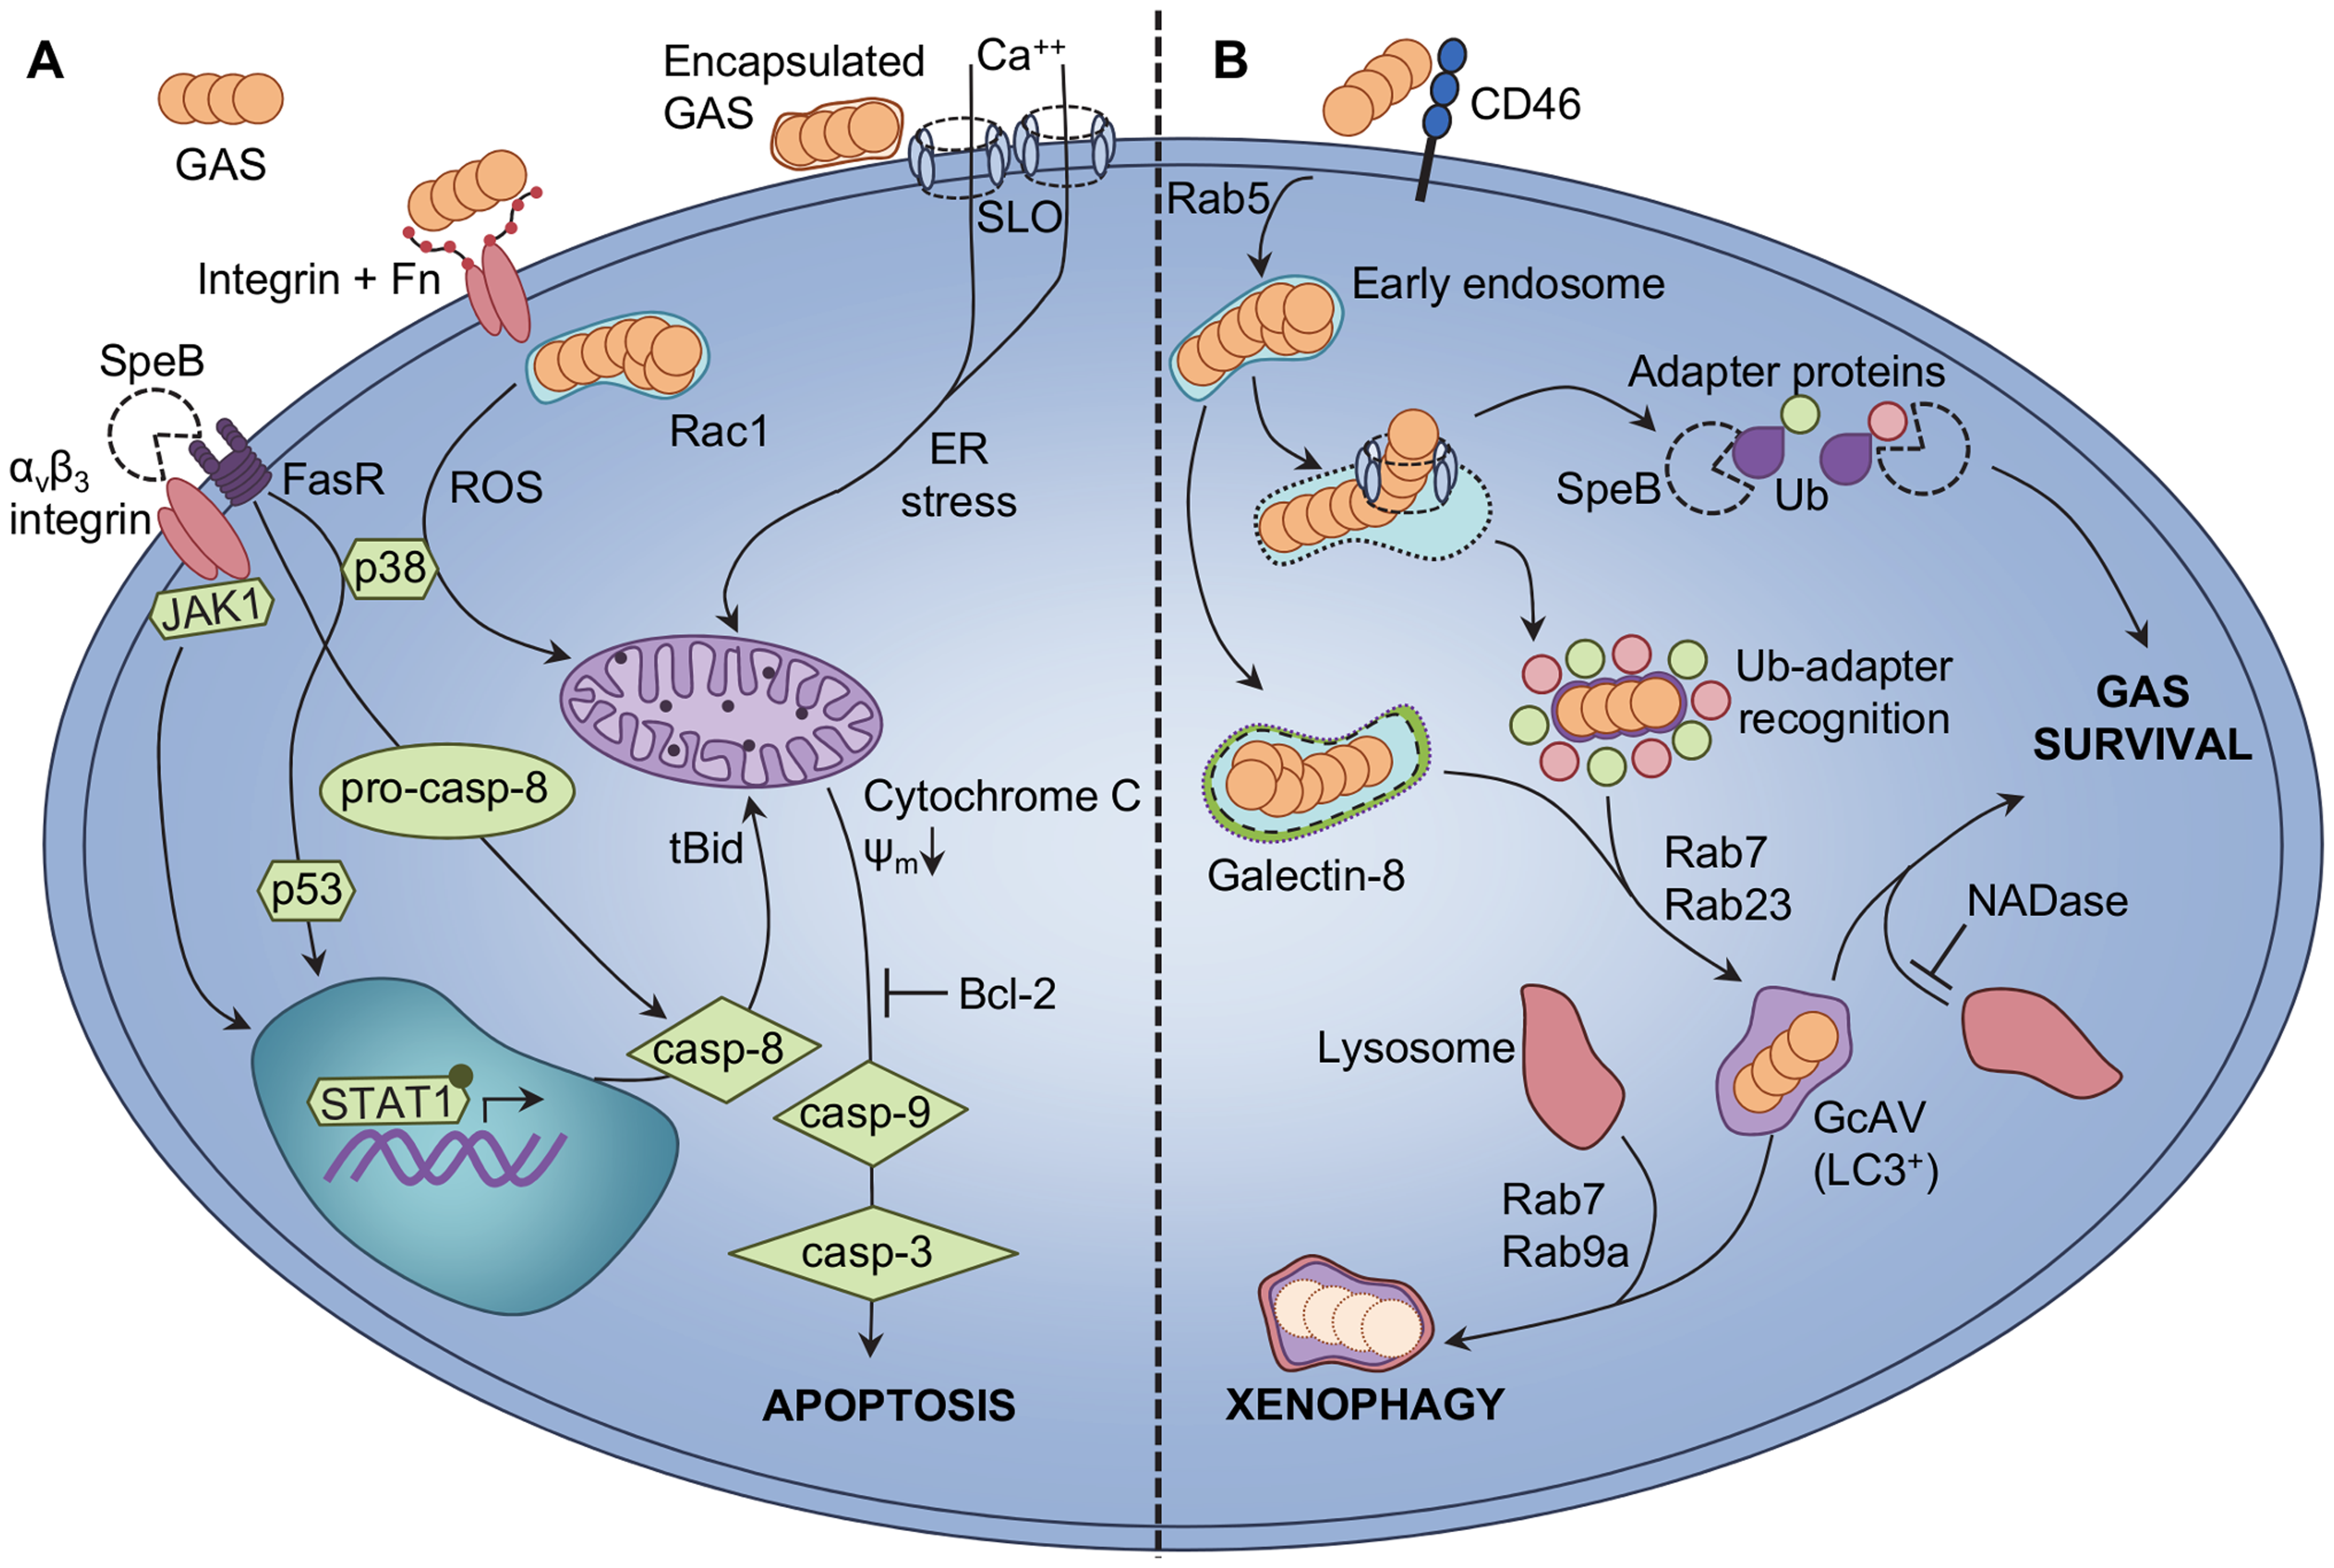 Epithelial cellular responses to GAS infection.